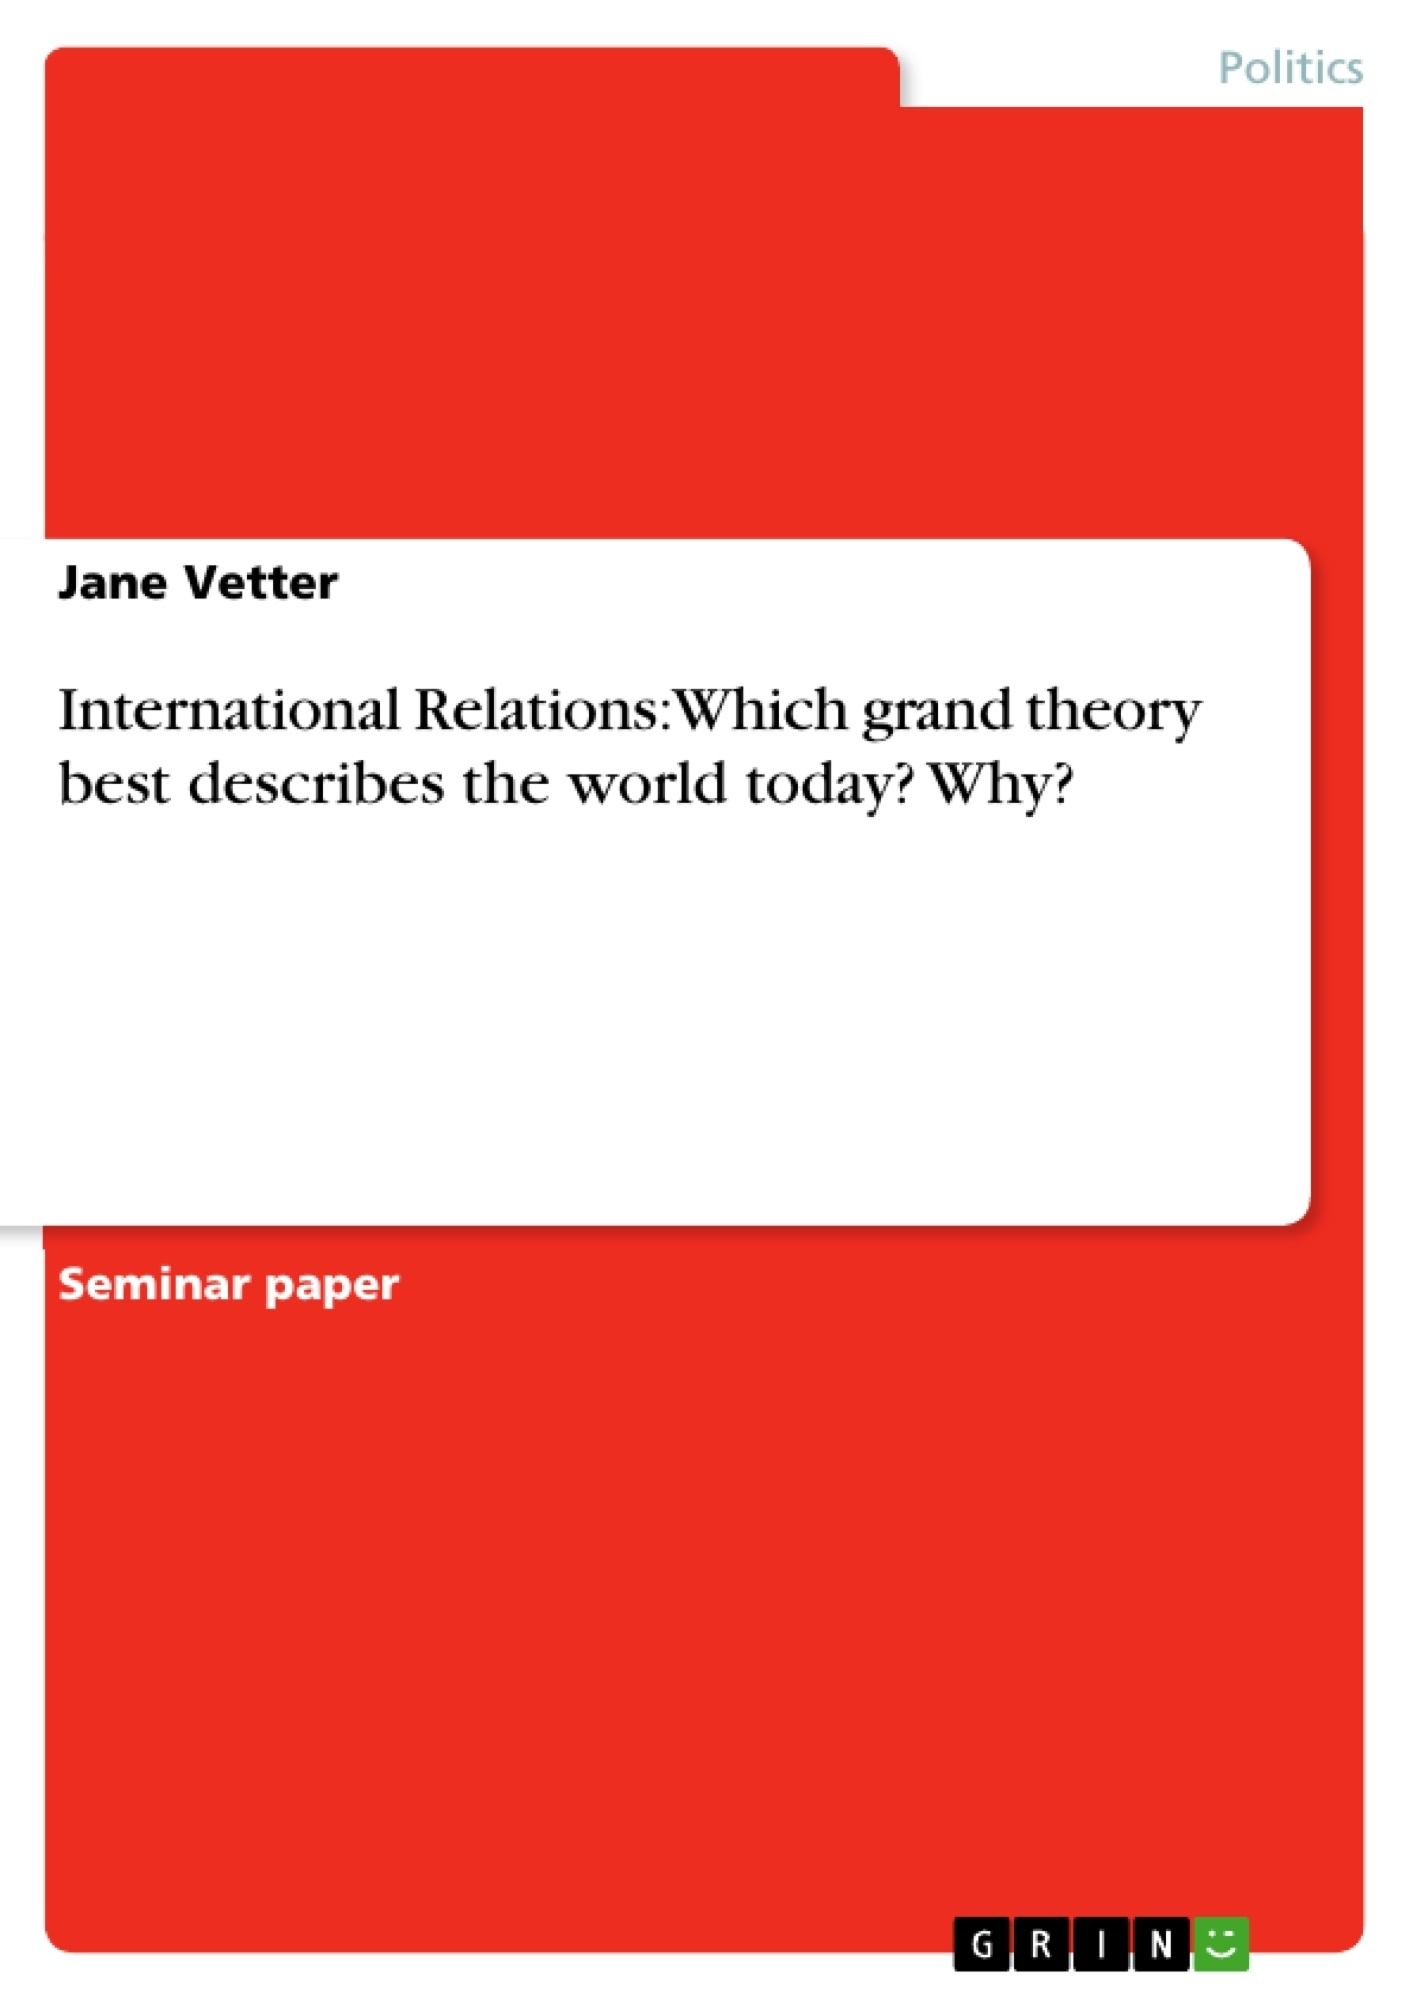 Title: International Relations: Which grand theory best describes the world today? Why?